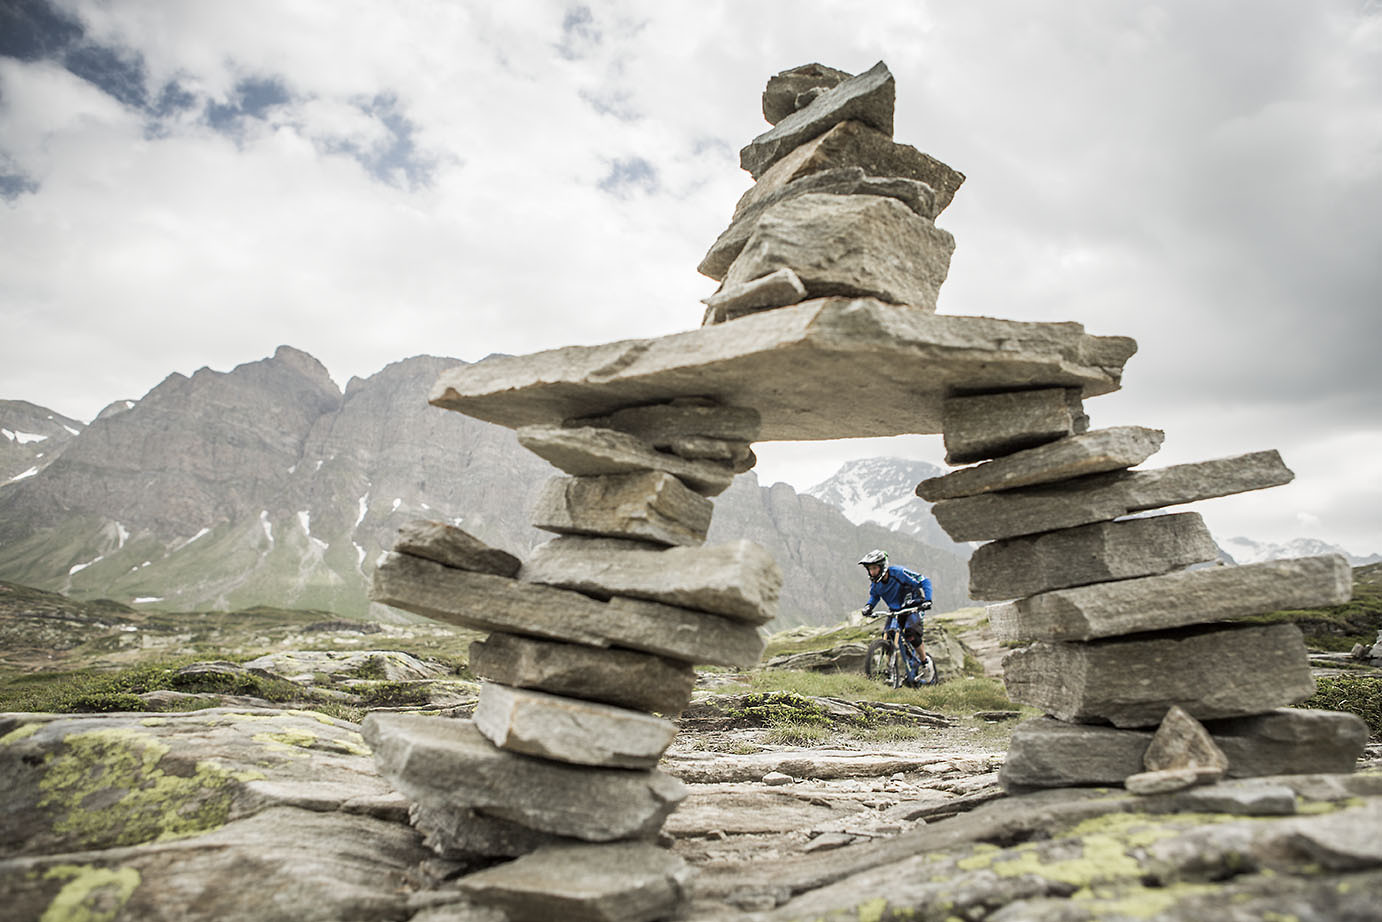 on the way to work - Hannes Klausner - Mountain Biking Pictures - Vital MTB